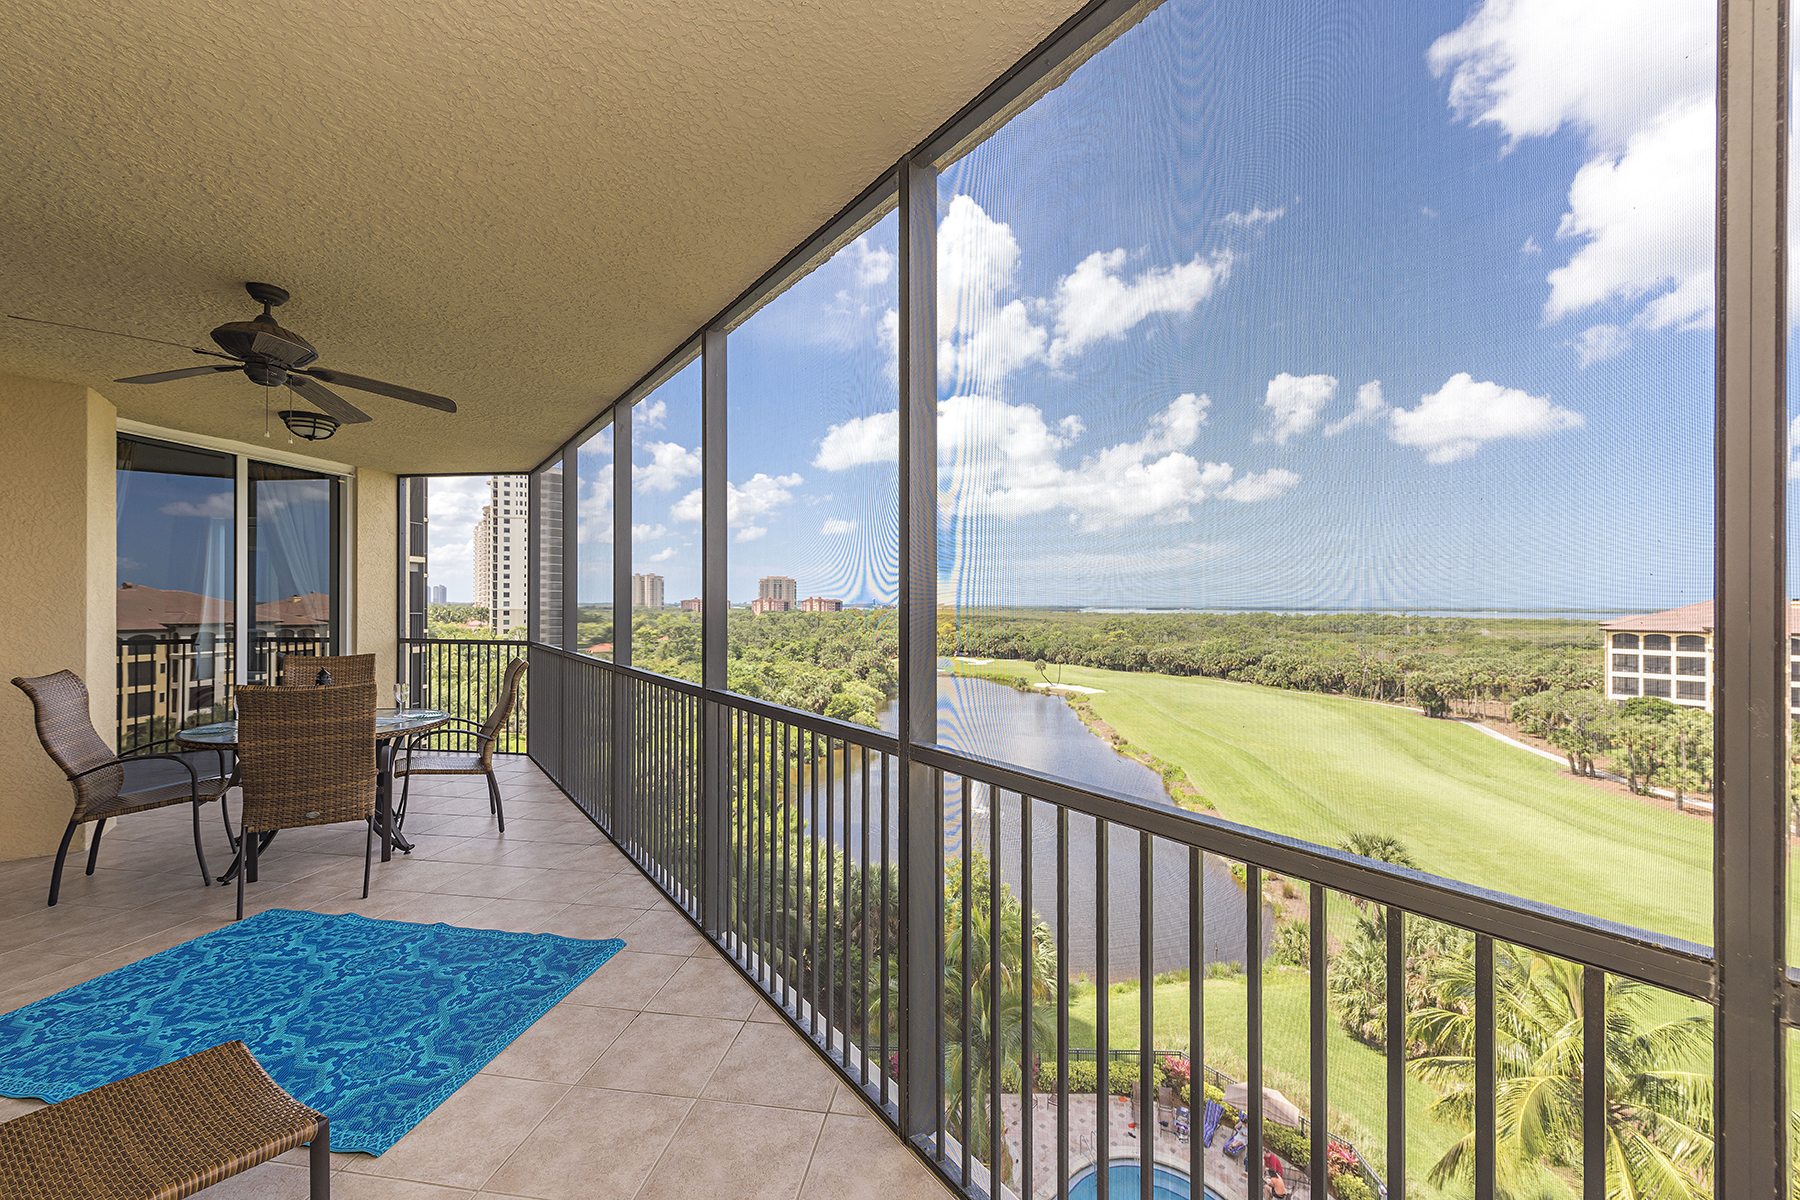 Condominium for Sale at THE COLONY - PELICAN LANDING - NAVONA 23540 Via Veneto Blvd 704 Bonita Springs, Florida, 34134 United States